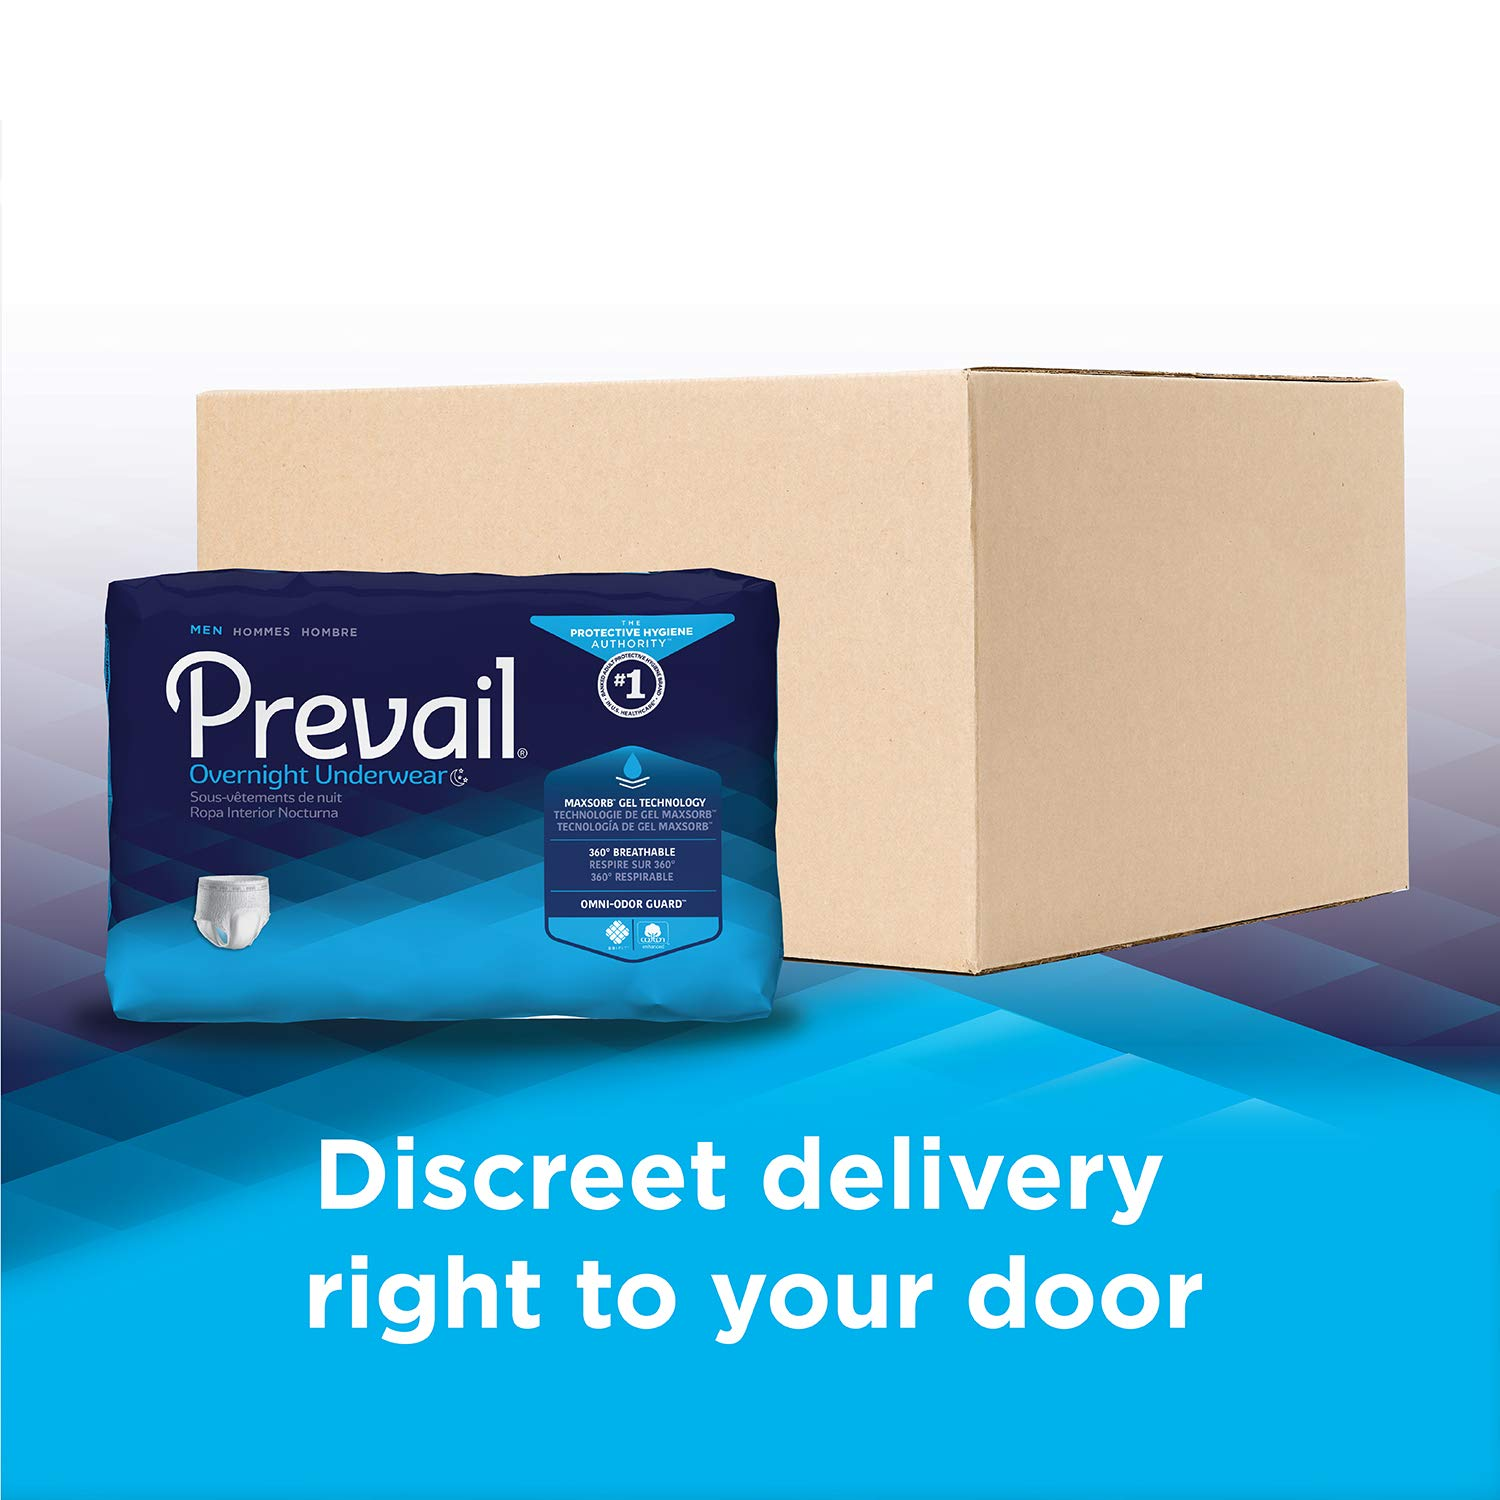 Amazon.com: Prevail for Men Incontinence Underwear, Overnight Absorbency, Large, 64 Count: Health & Personal Care